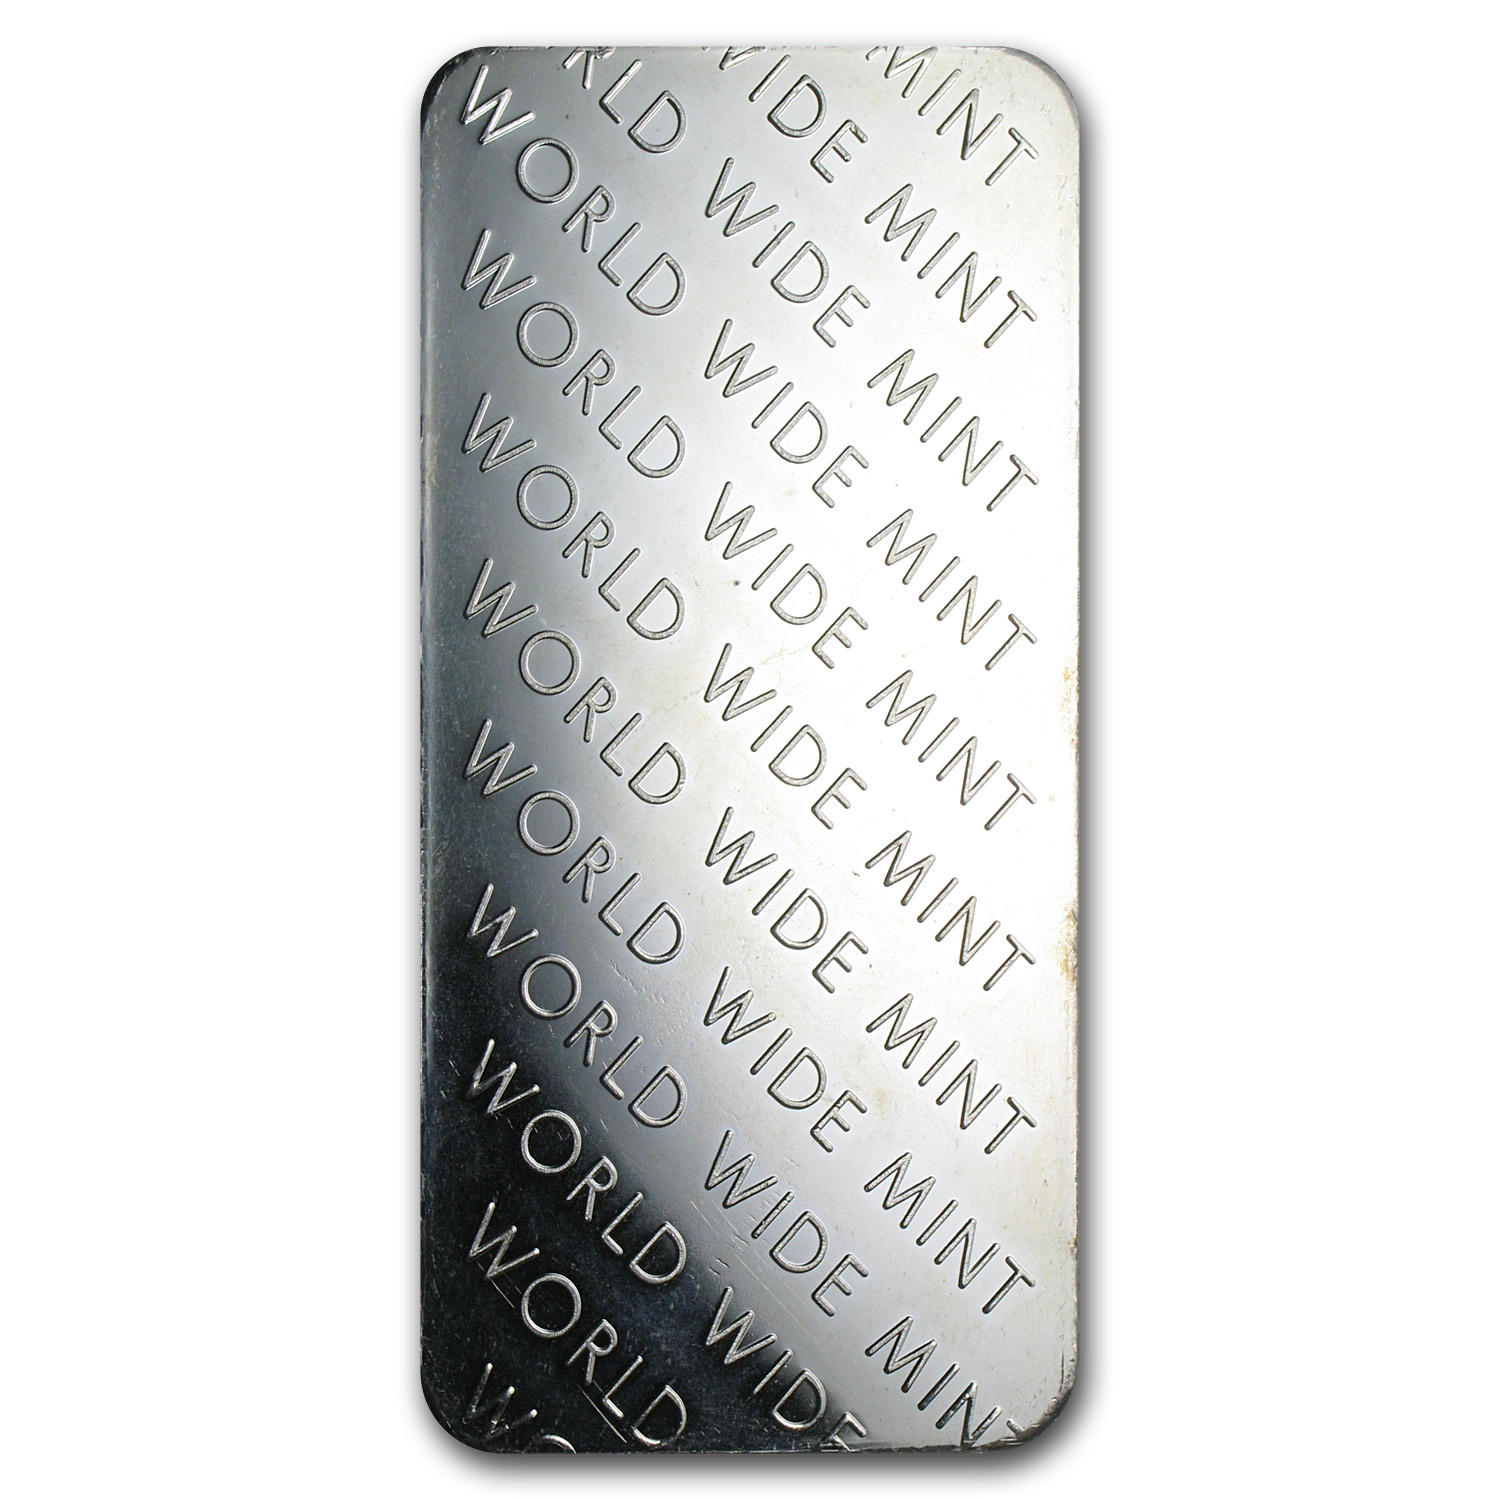 10 oz Silver Bars - World Wide Mint (Eagle)